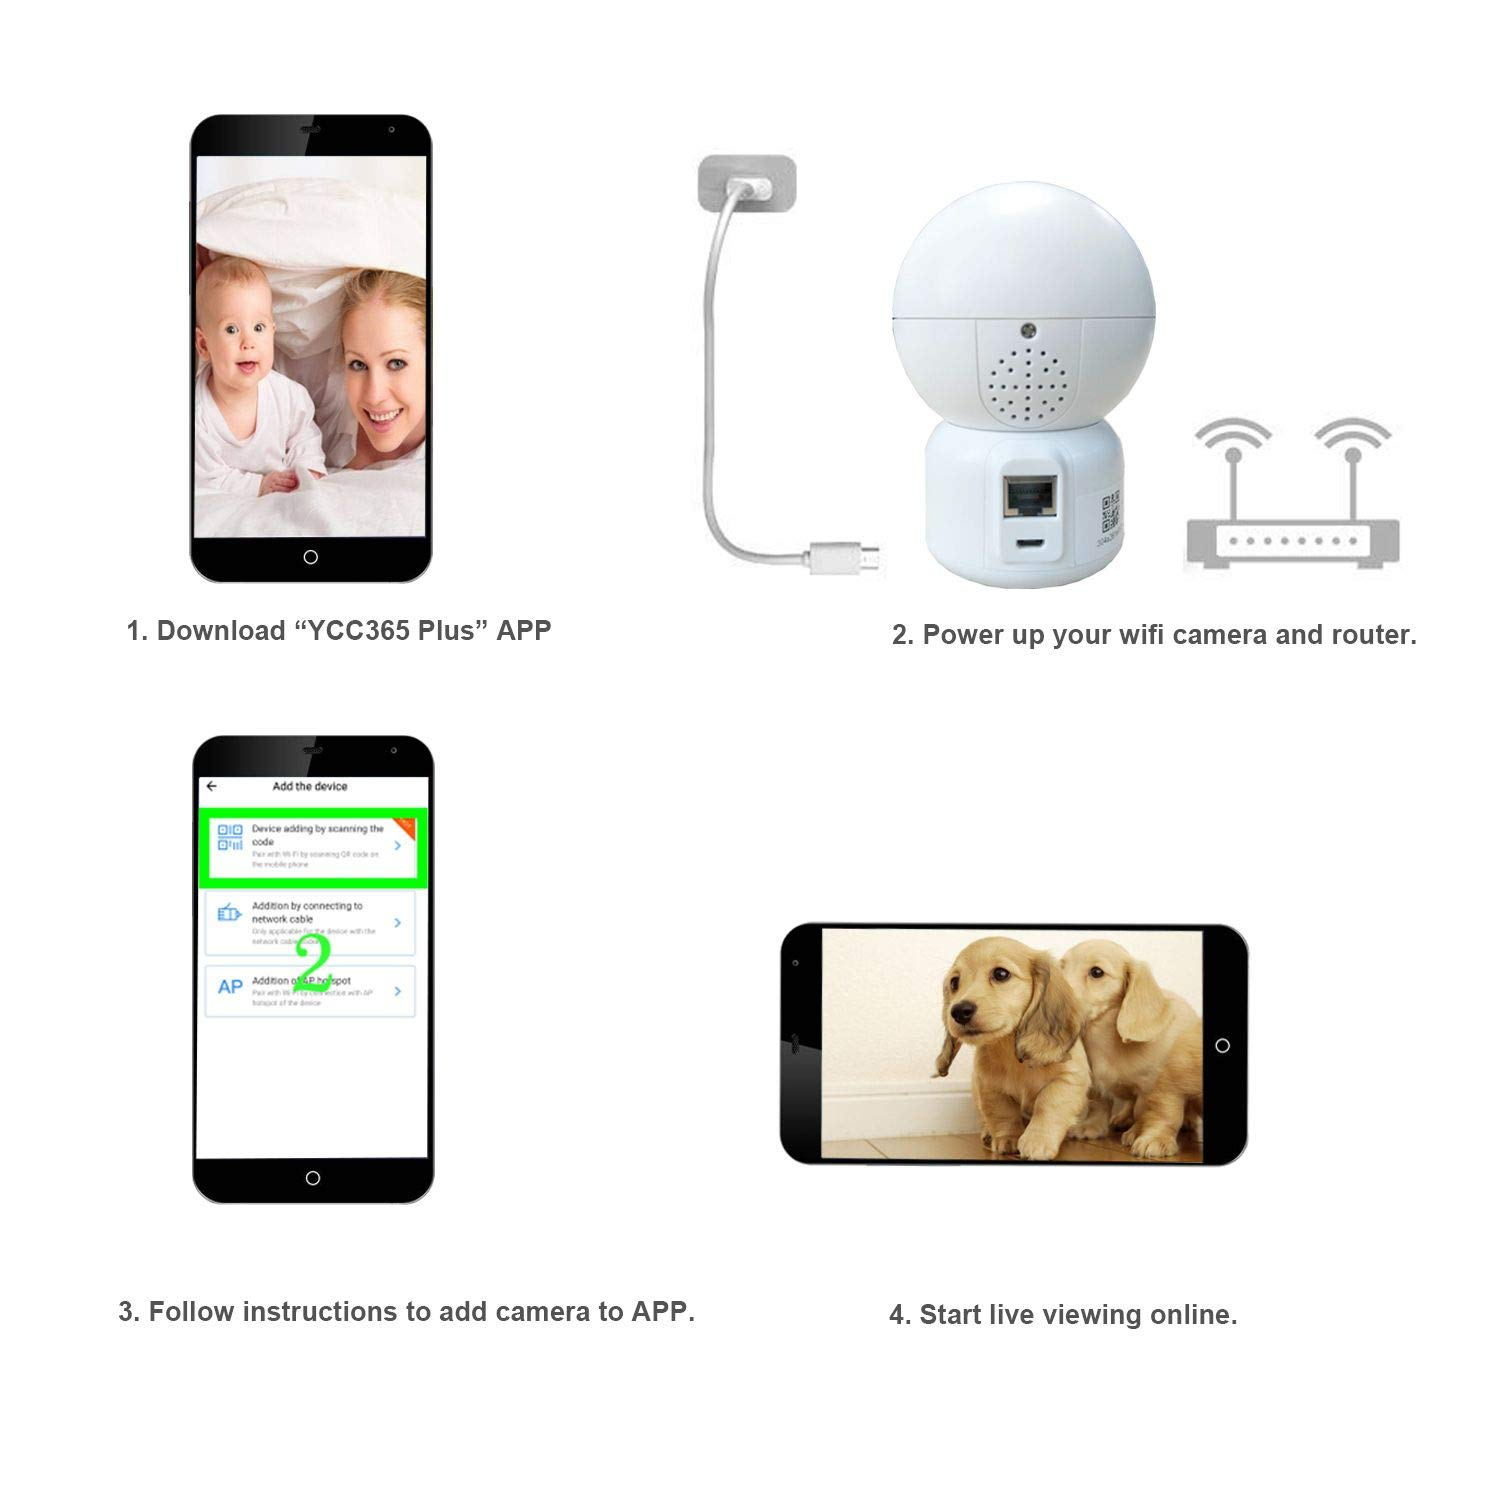 WiFi Dog IP Camera 1080P, JZTEK Smart Wireless Cam Pan/Tilt/Zoom with Cloud Service 3D Image Touch Navigation Panoramic View Night Vision, Two-Way Audio, Motion Detection for Elder,Baby,Pet by JZTEK (Image #7)